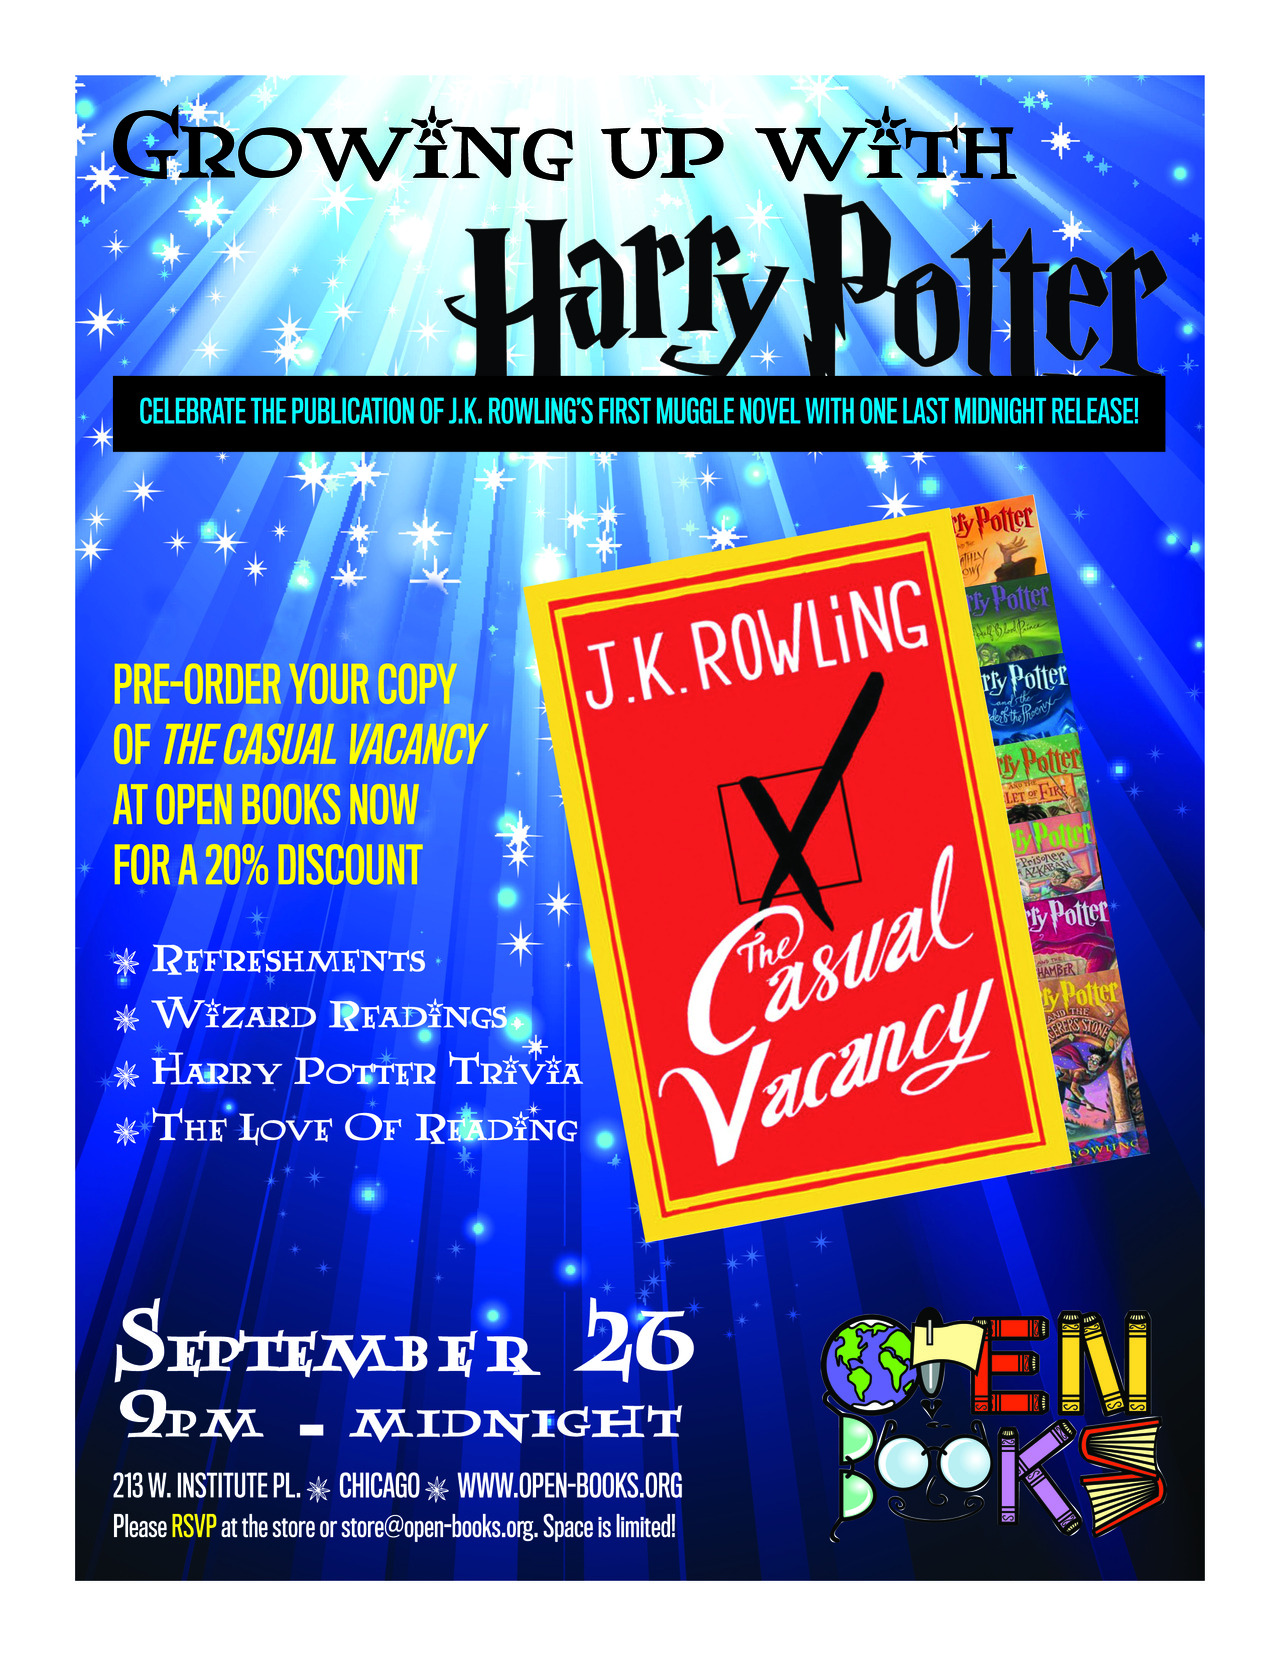 "You thought you had attended your last midnight book release. Think again!<br /><br /><br /><br />We are very excited to officially announce our celebration of the love of reading, the impact that J.K. Rowling had on a generation of readers, and the release of J.K. Rowling's first Muggle novel, The Casual Vacancy!<br /><br /><br /><br />A lot of Harry Potter fans are now grown up, but find reading no less magical. Come out, stay up late, and help us celebrate reading and literacy!<br /><br /><br /><br />Open Books is now accepting pre-orders of The Casual Vacancy at a 20% discount. Stop in or contact the store to reserve yours today.<br /><br /><br /><br />Please feel free to spread the picture above and the text below far and wide. <br /><br /><br /><br />More details to come! ^KE<br /><br /><br /><br />—</p><br /><br /><br /><p>Literacy nonprofit and used bookstore Open Books celebrates the upcoming release of J.K. Rowling's latest novel, along with her famous wizard protagonist, with their event Growing Up With Harry Potter.<br /><br /><br /><br />The magical Harry Potter series has engaged millions of children and young adults and transformed them into enthusiastic readers. In fact, according to The Scholastic Kids and Family Reading Report, ""51% of children between the ages of 5 and 17 years old say they did not read books for fun before reading the Harry Potter series."" As Open Books is dedicated to fostering a love of reading and writing through its literacy programs and award-winning bookstore, we will be celebrating the work of J.K. Rowling, an author who has truly inspired a generation of book-lovers.<br /><br /><br /><br />Relive the magic of Harry Potter and celebrate the publication of Rowlings' first Muggle novel with one last midnight release!  The evening will be full of Harry Potter nostalgia, including trivia, wizard readings, refreshments, contests, and more. When the clock strikes midnight, all attendees will have the opportunity to be the first to experience a new era of J.K. Rowling's writing when The Casual Vacancy officially goes on sale!<br /><br /><br /><br />Space is limited, so please RSVP for this event by visiting the Open Books store located in River North at 213 W. Institute Pl. or by sending an email to store@open-books.org. Open Books is also currently accepting pre-orders of The Casual Vacancy.  Pre-ordered copies of the book will be discounted by 20% off the cover price. <br /><br /><br /><br />Wednesday, September 26th<br /><br /><br /><br />9pm - midnight<br /><br /><br /><br />Open Books store <br /><br /><br /><br />213 W. Institute Pl.<br /><br /><br /><br />Chicago, IL  60610<br /><br /><br /><br />www.open-books.org</p><br /><br /><br /><p>"